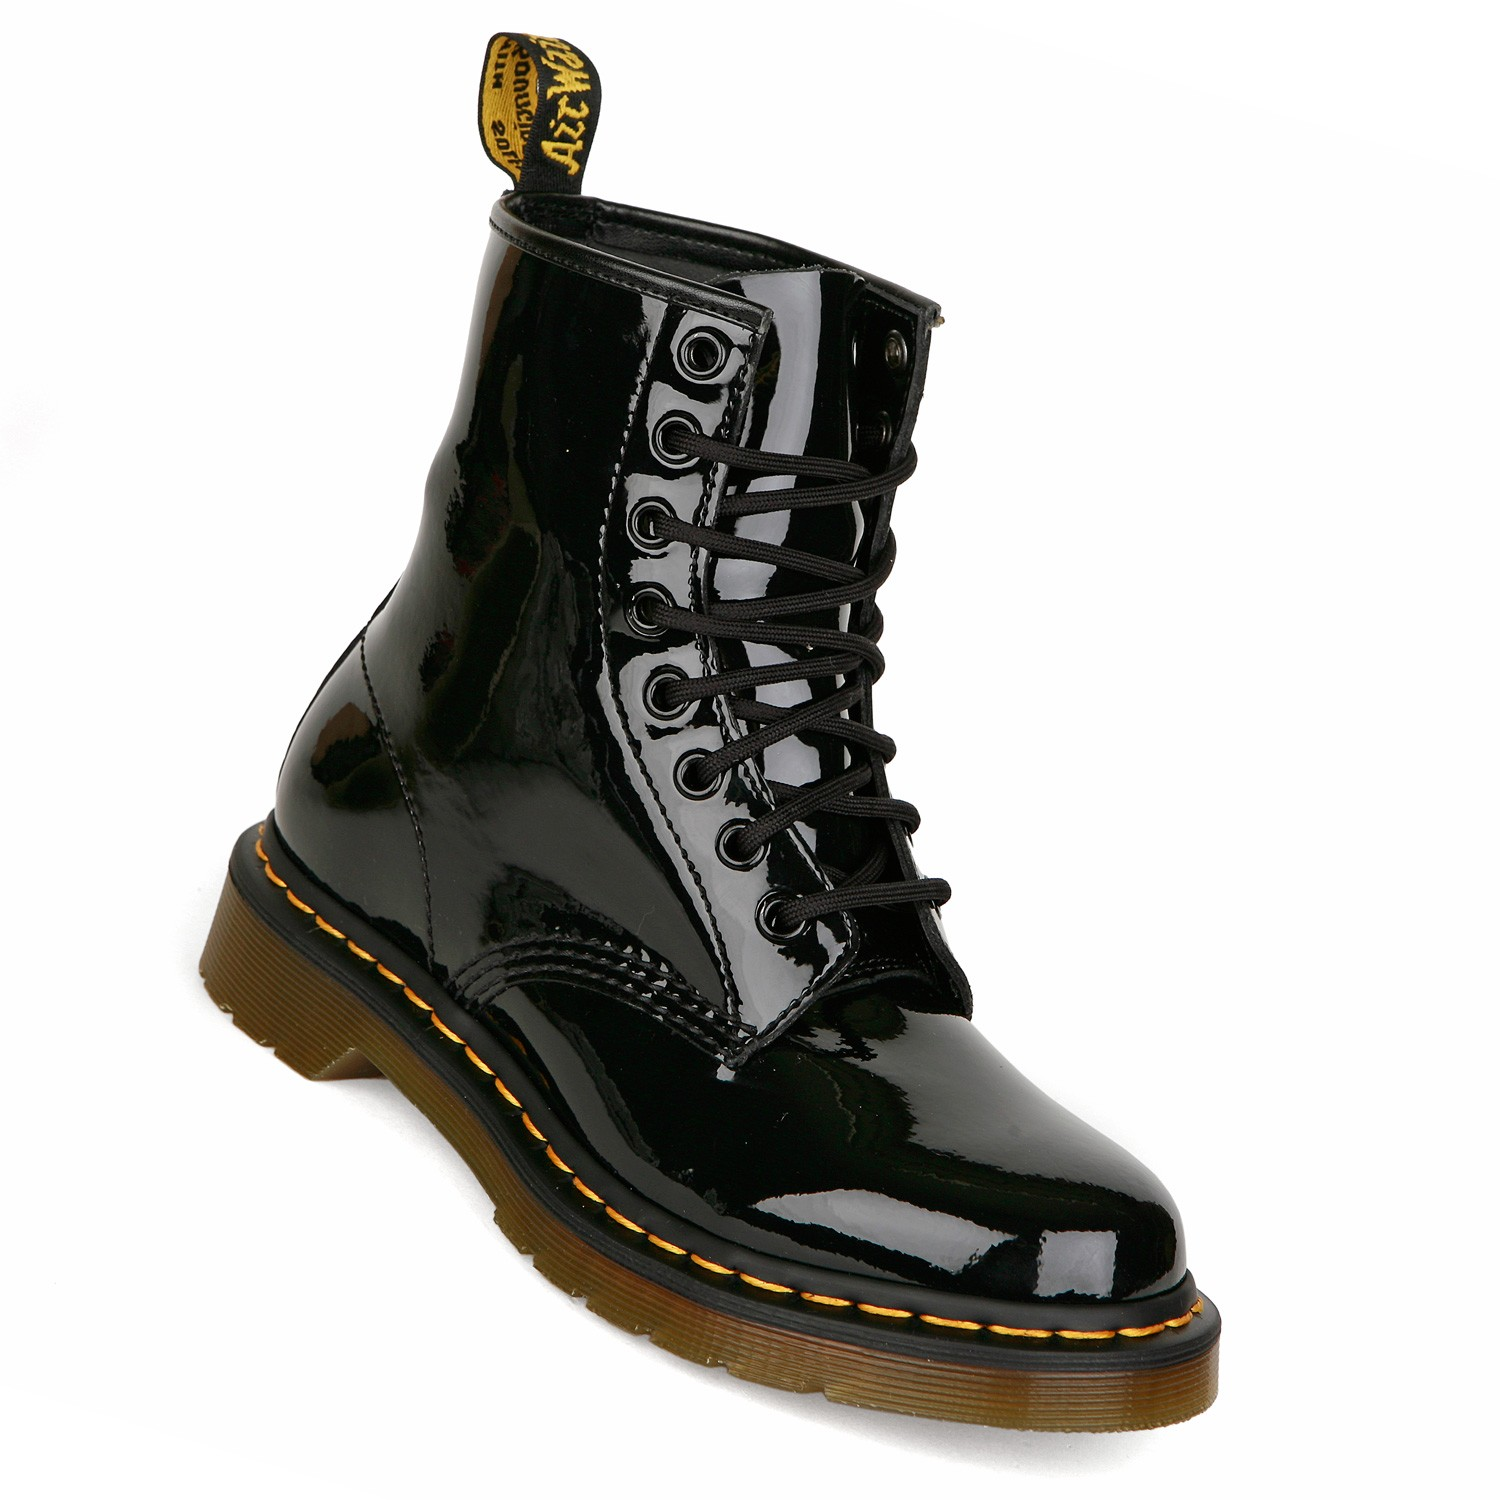 dr martens 1460 w damen boots 8 loch doc martens schwarz lack gr 37 38 ebay. Black Bedroom Furniture Sets. Home Design Ideas